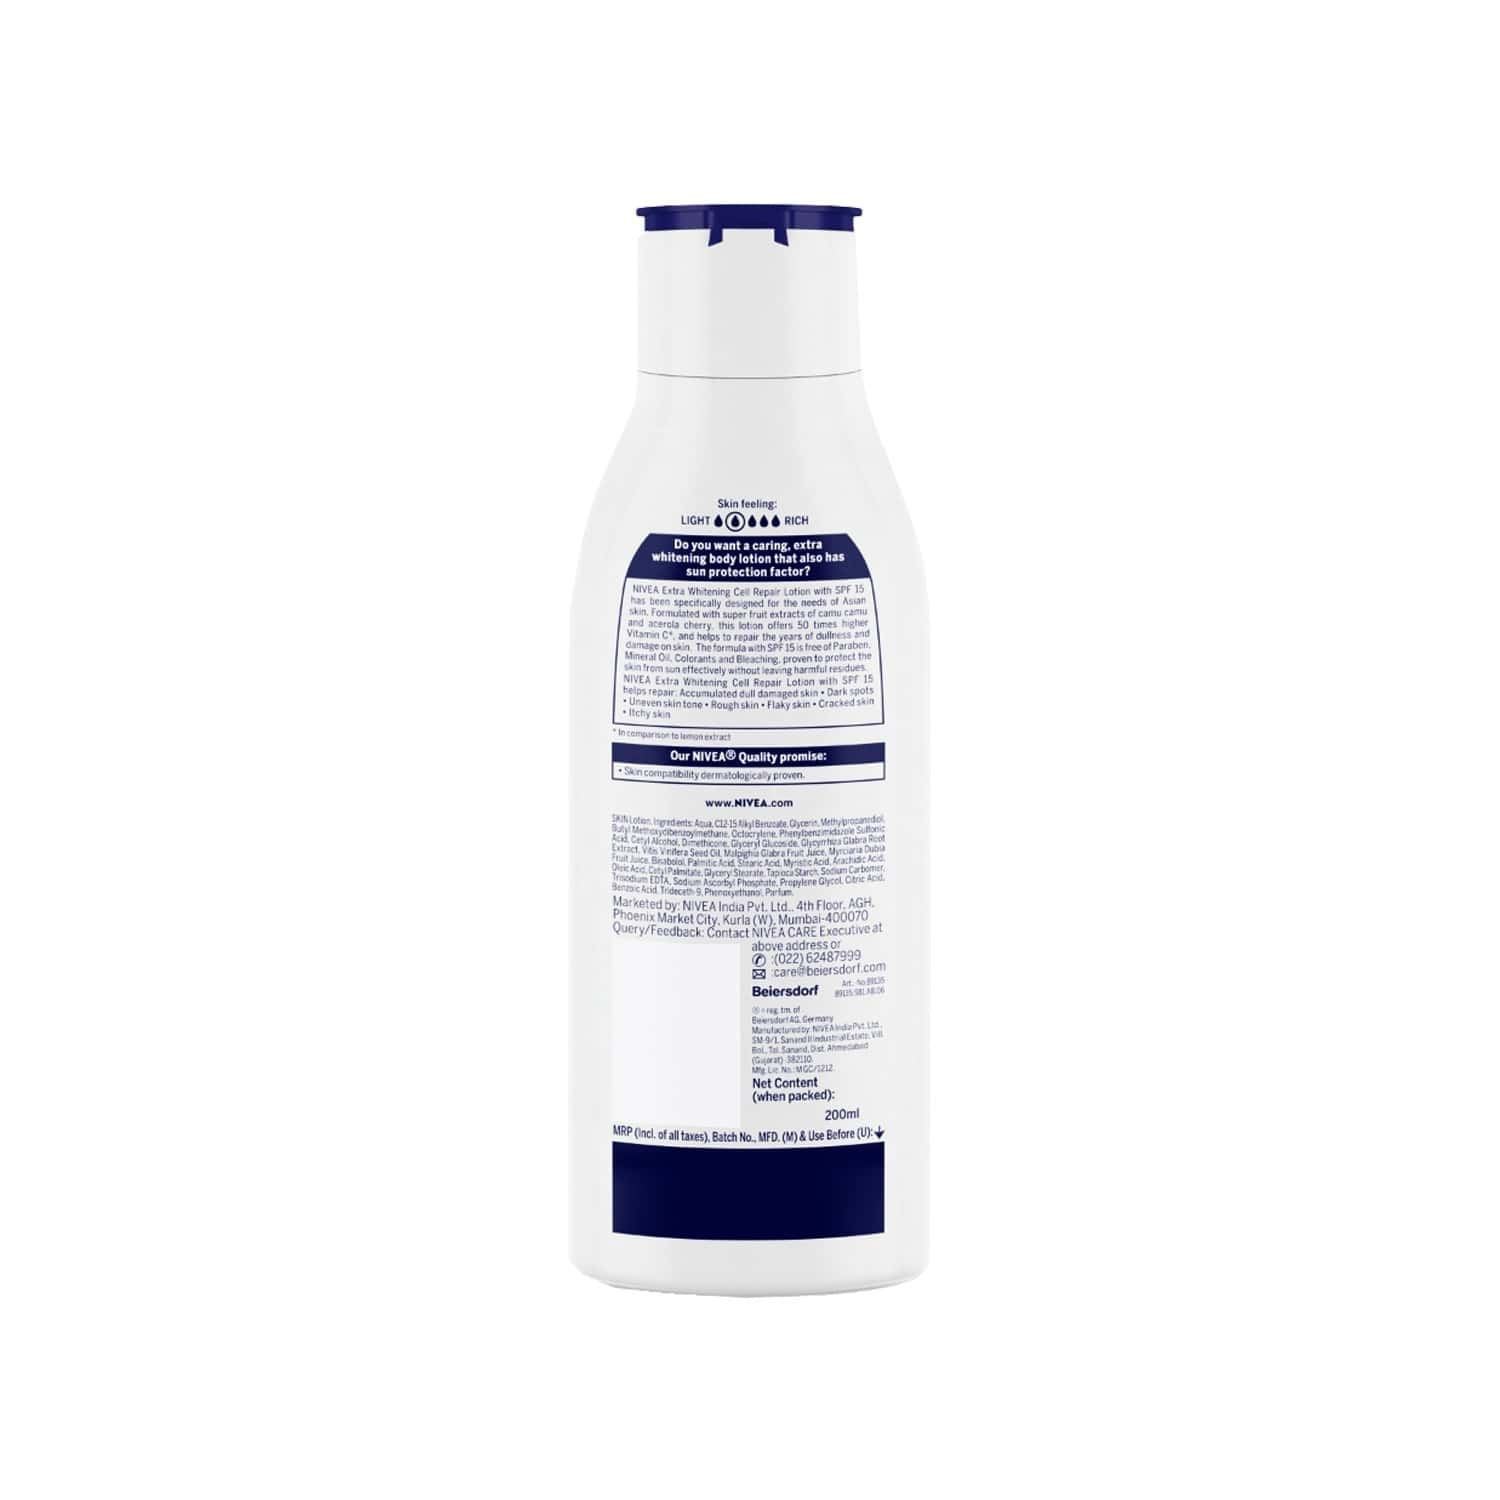 Nivea Extra Whitening Cell Repair Spf 15 Body Lotion - 200 Ml